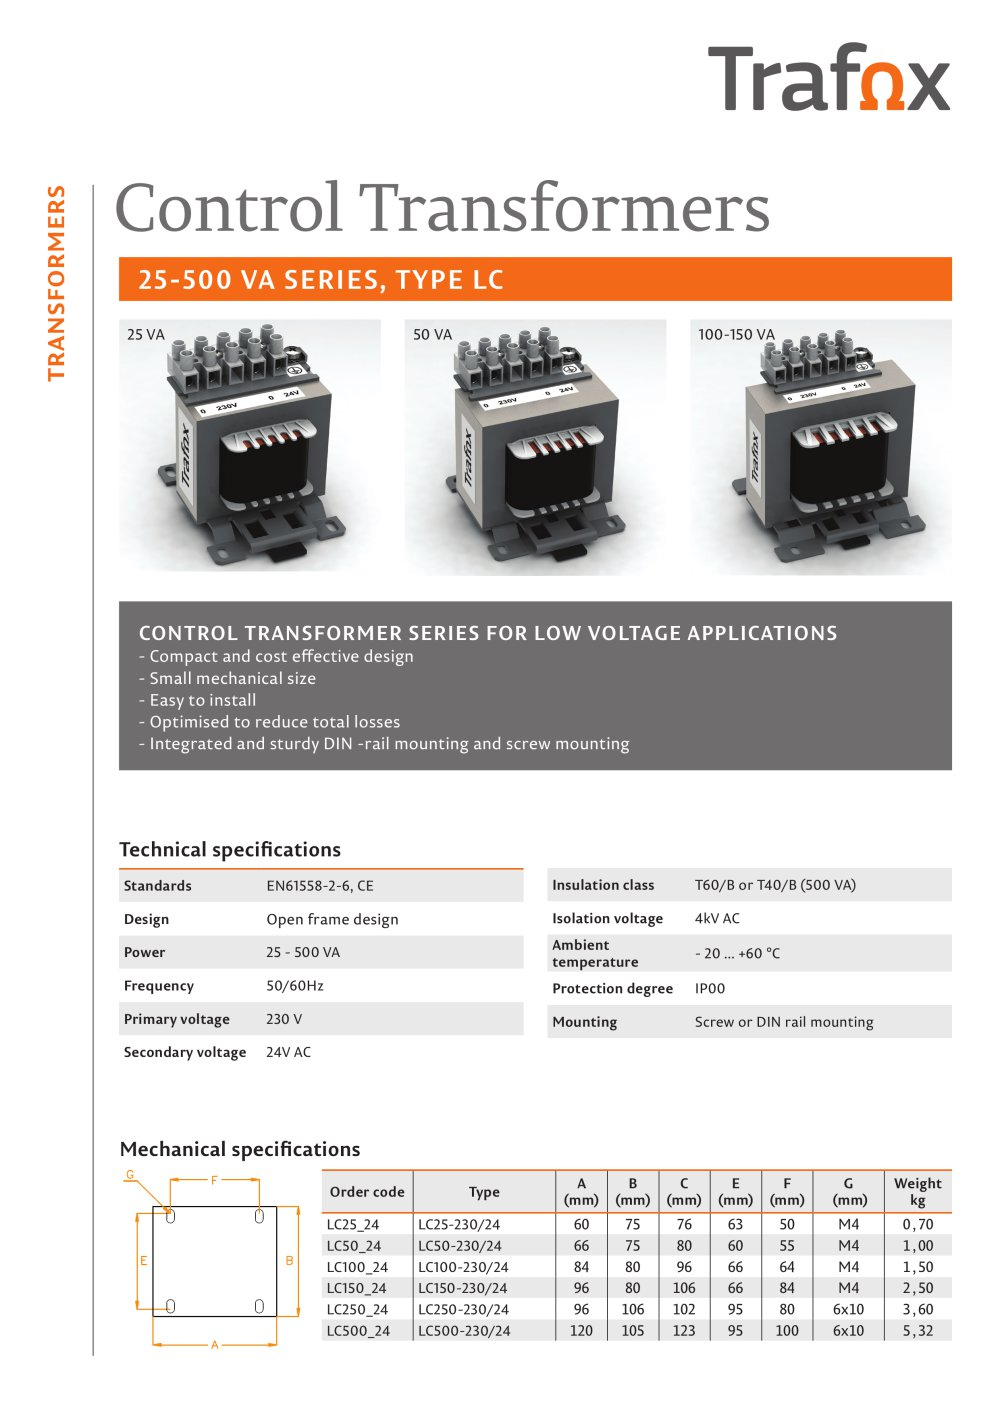 micron control transformer wiring diagram Collection-Micron Control Transformer Wiring Diagram Wiring Solutions 8-g